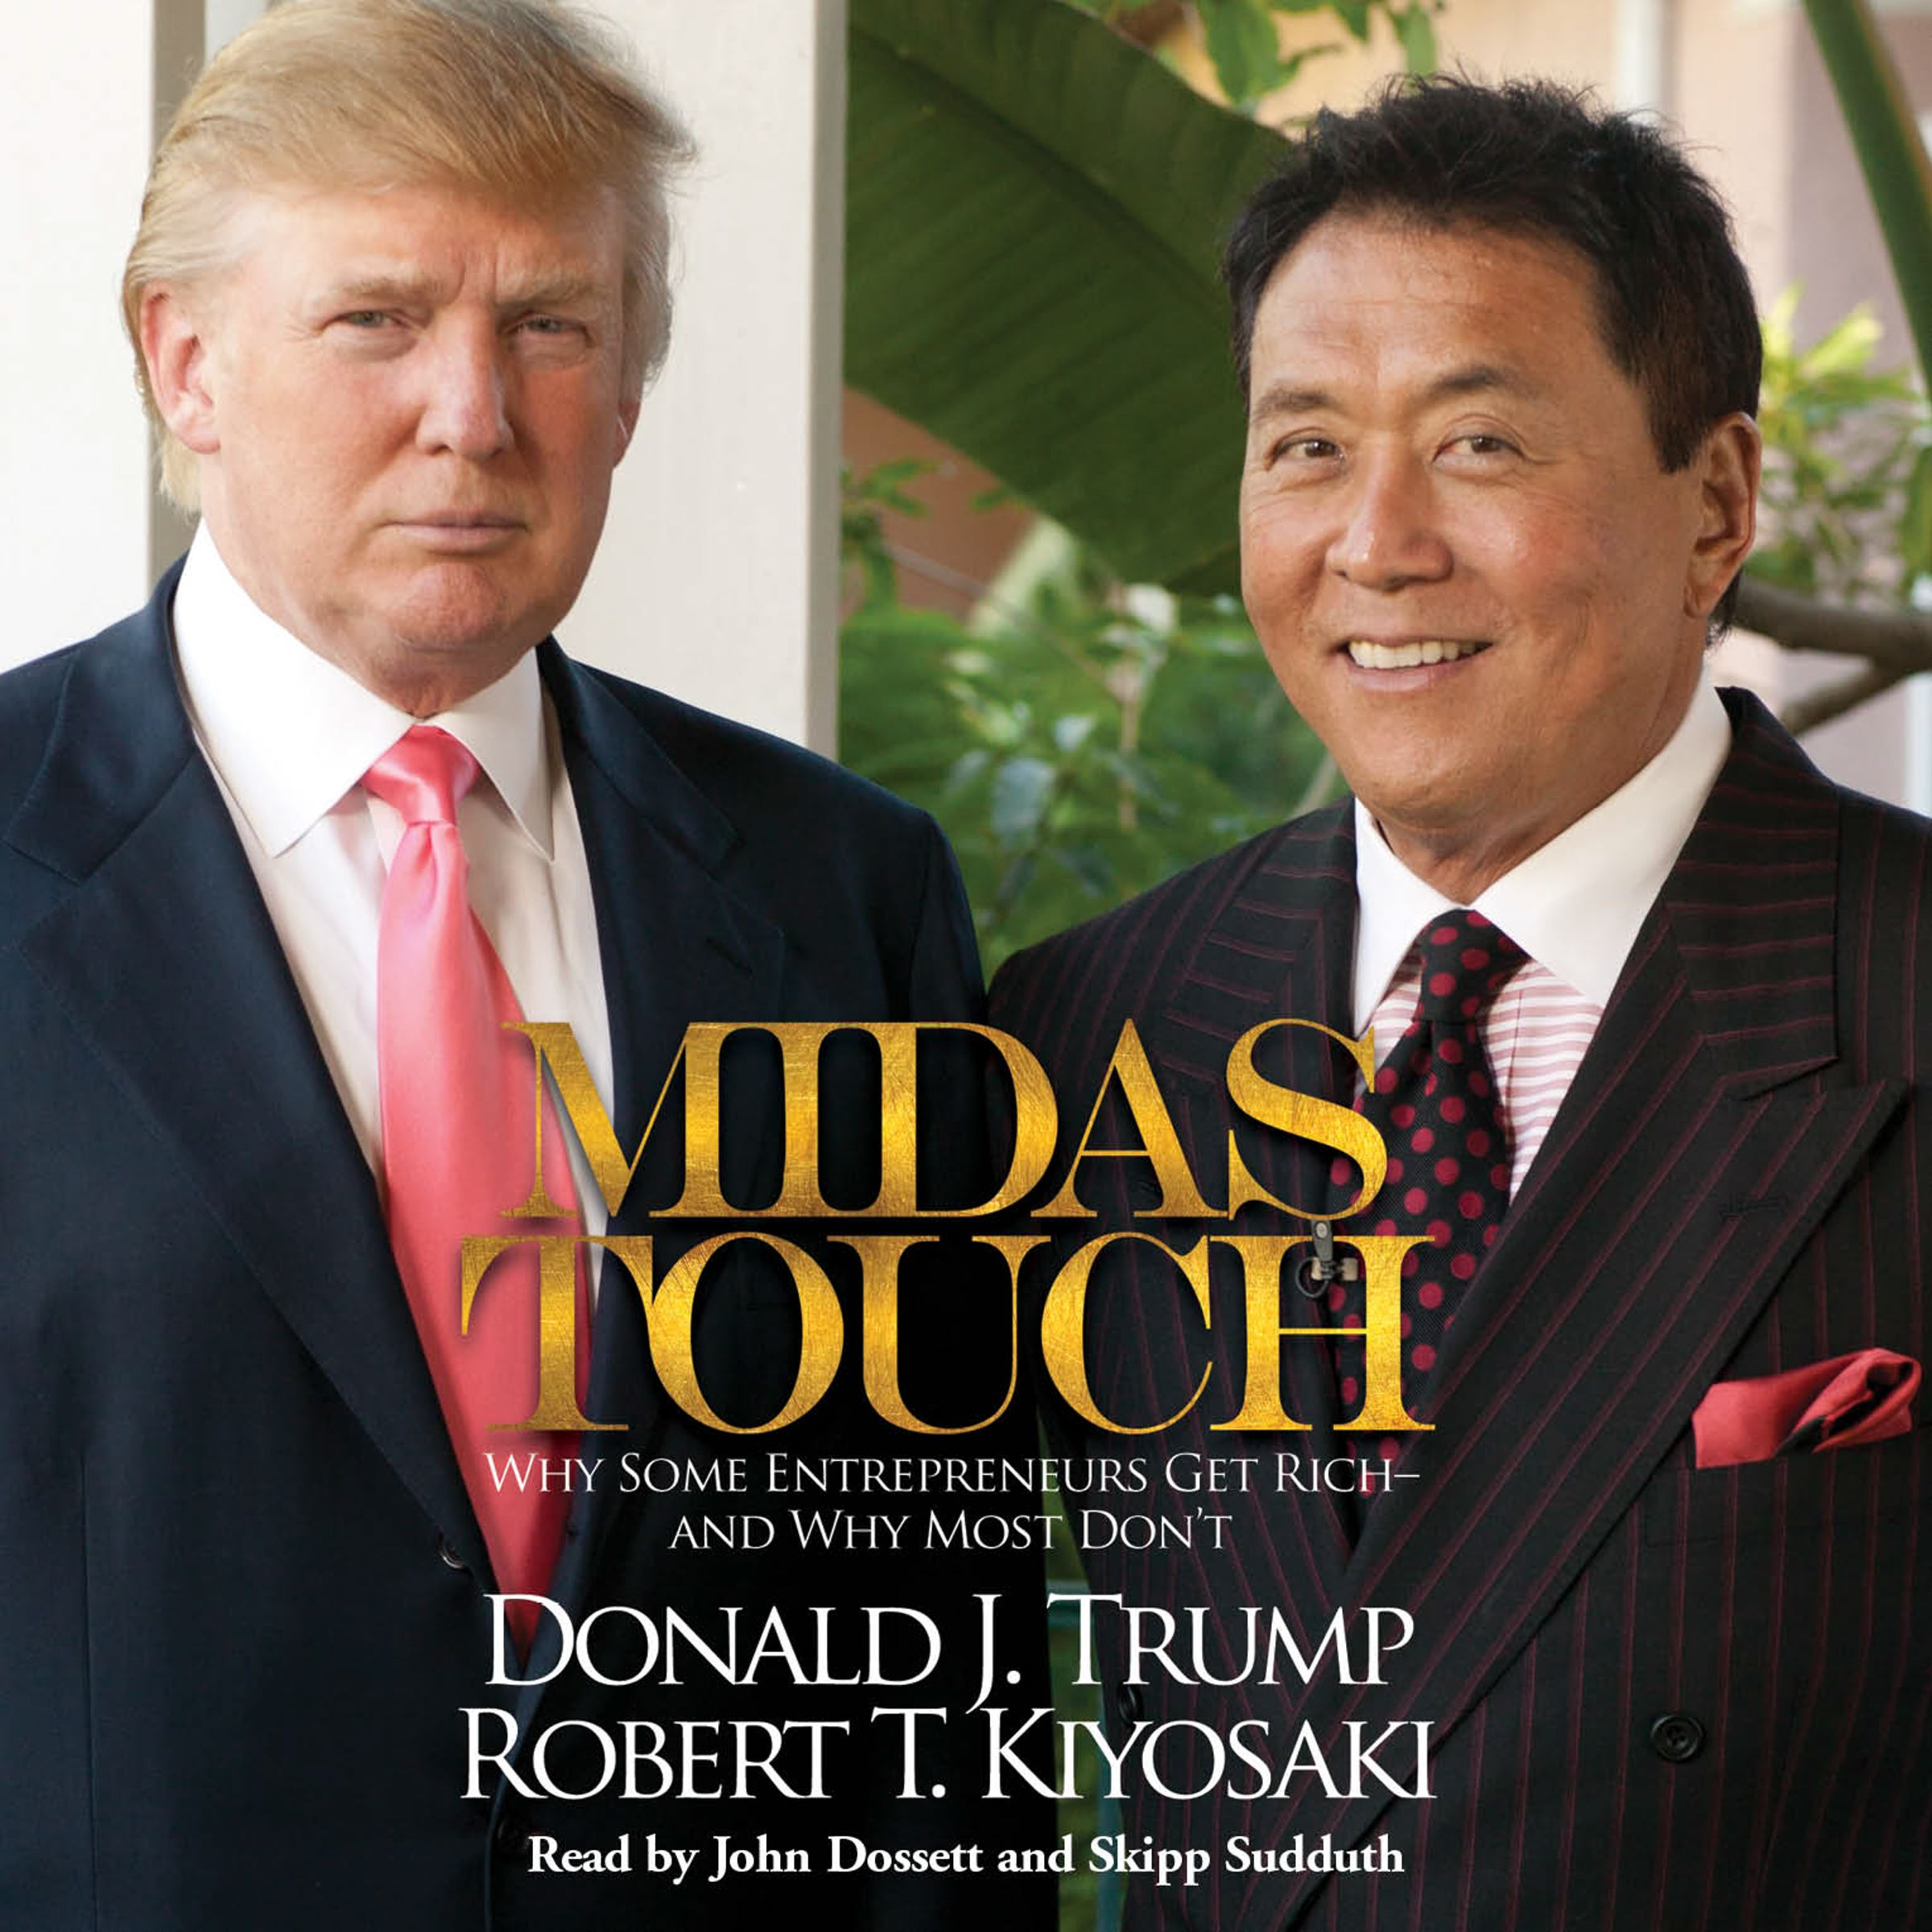 Midas-touch-9781442347960_hr